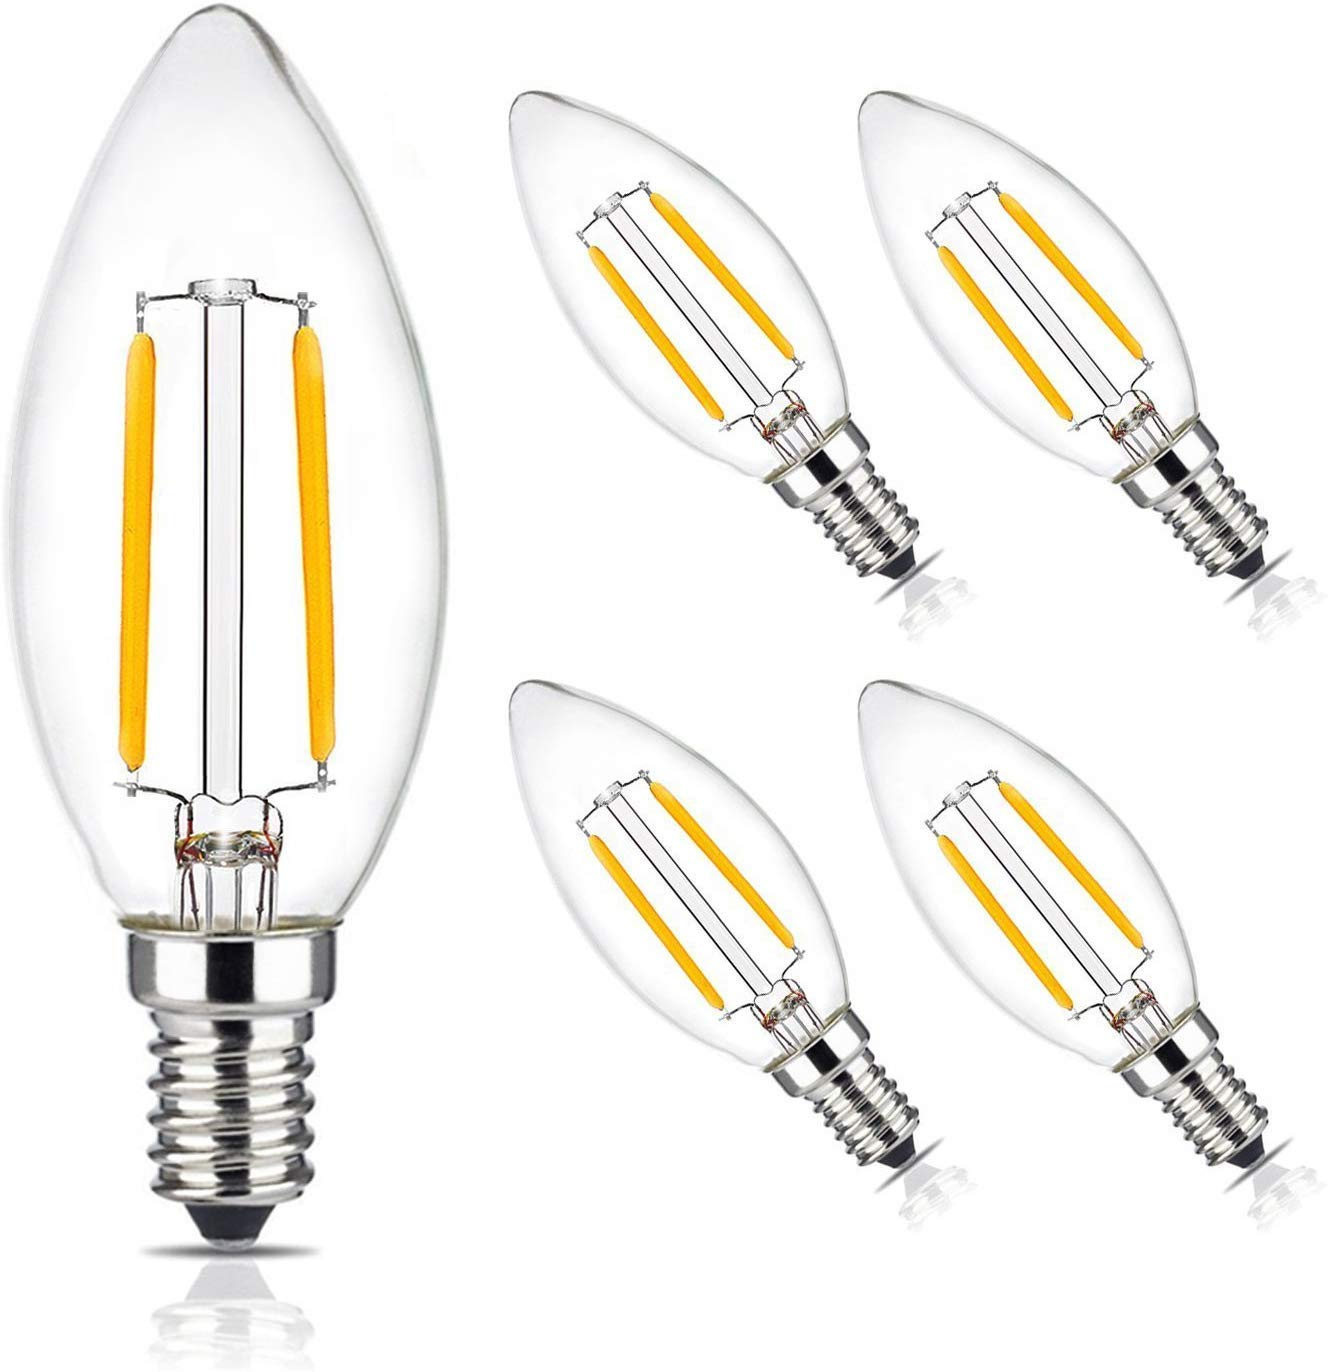 Philip LED Bulb E14 Edison 25W Cool White 290lm Non-Dimmable Lamp